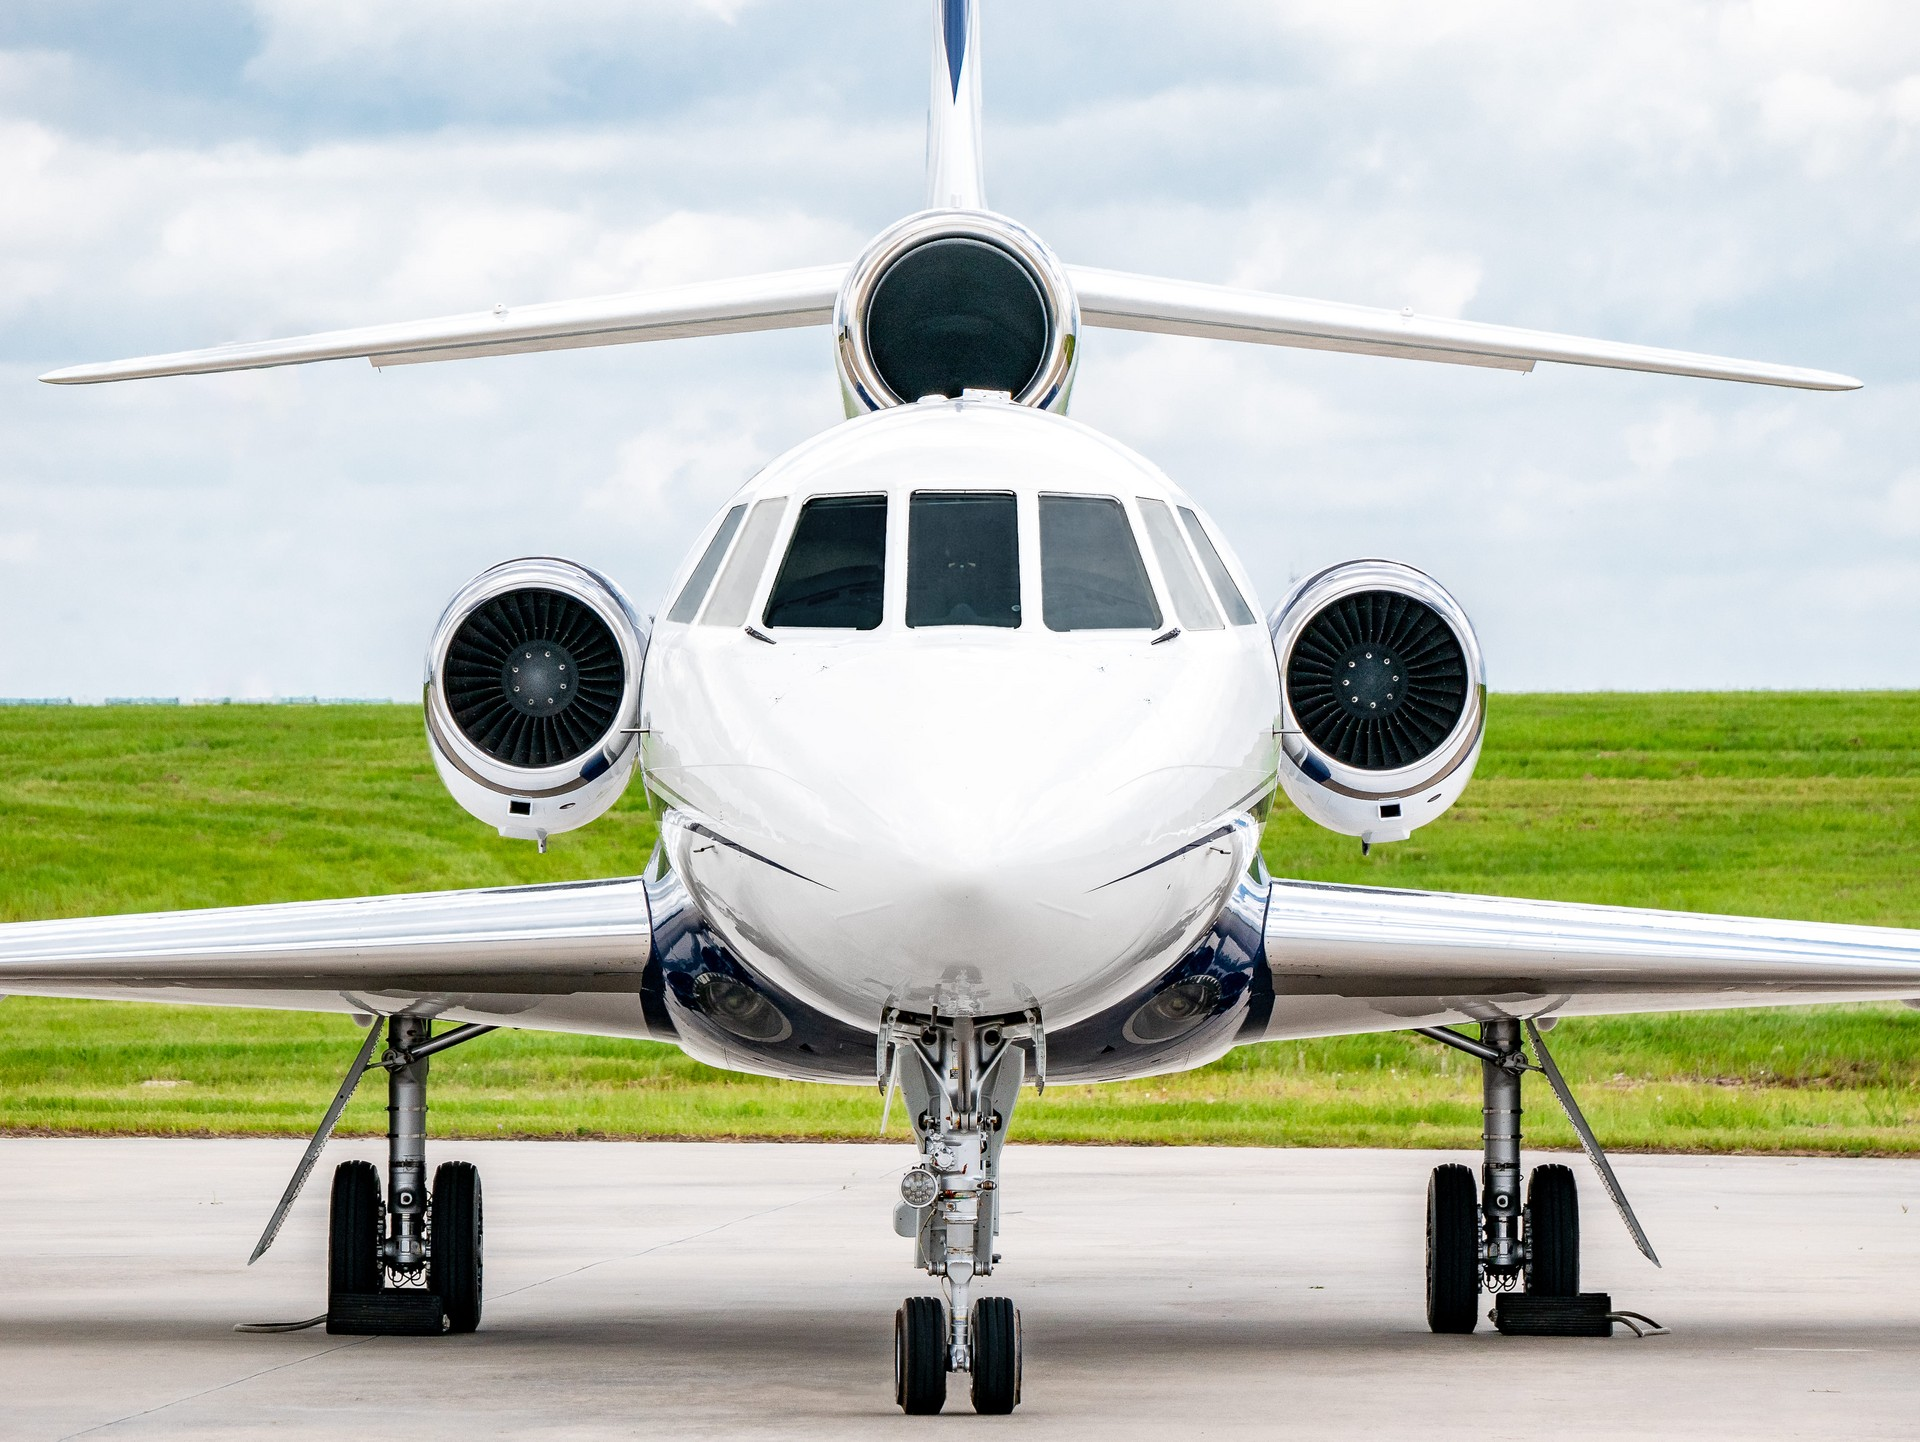 Collinsville Private Jet and Air Charter Flights